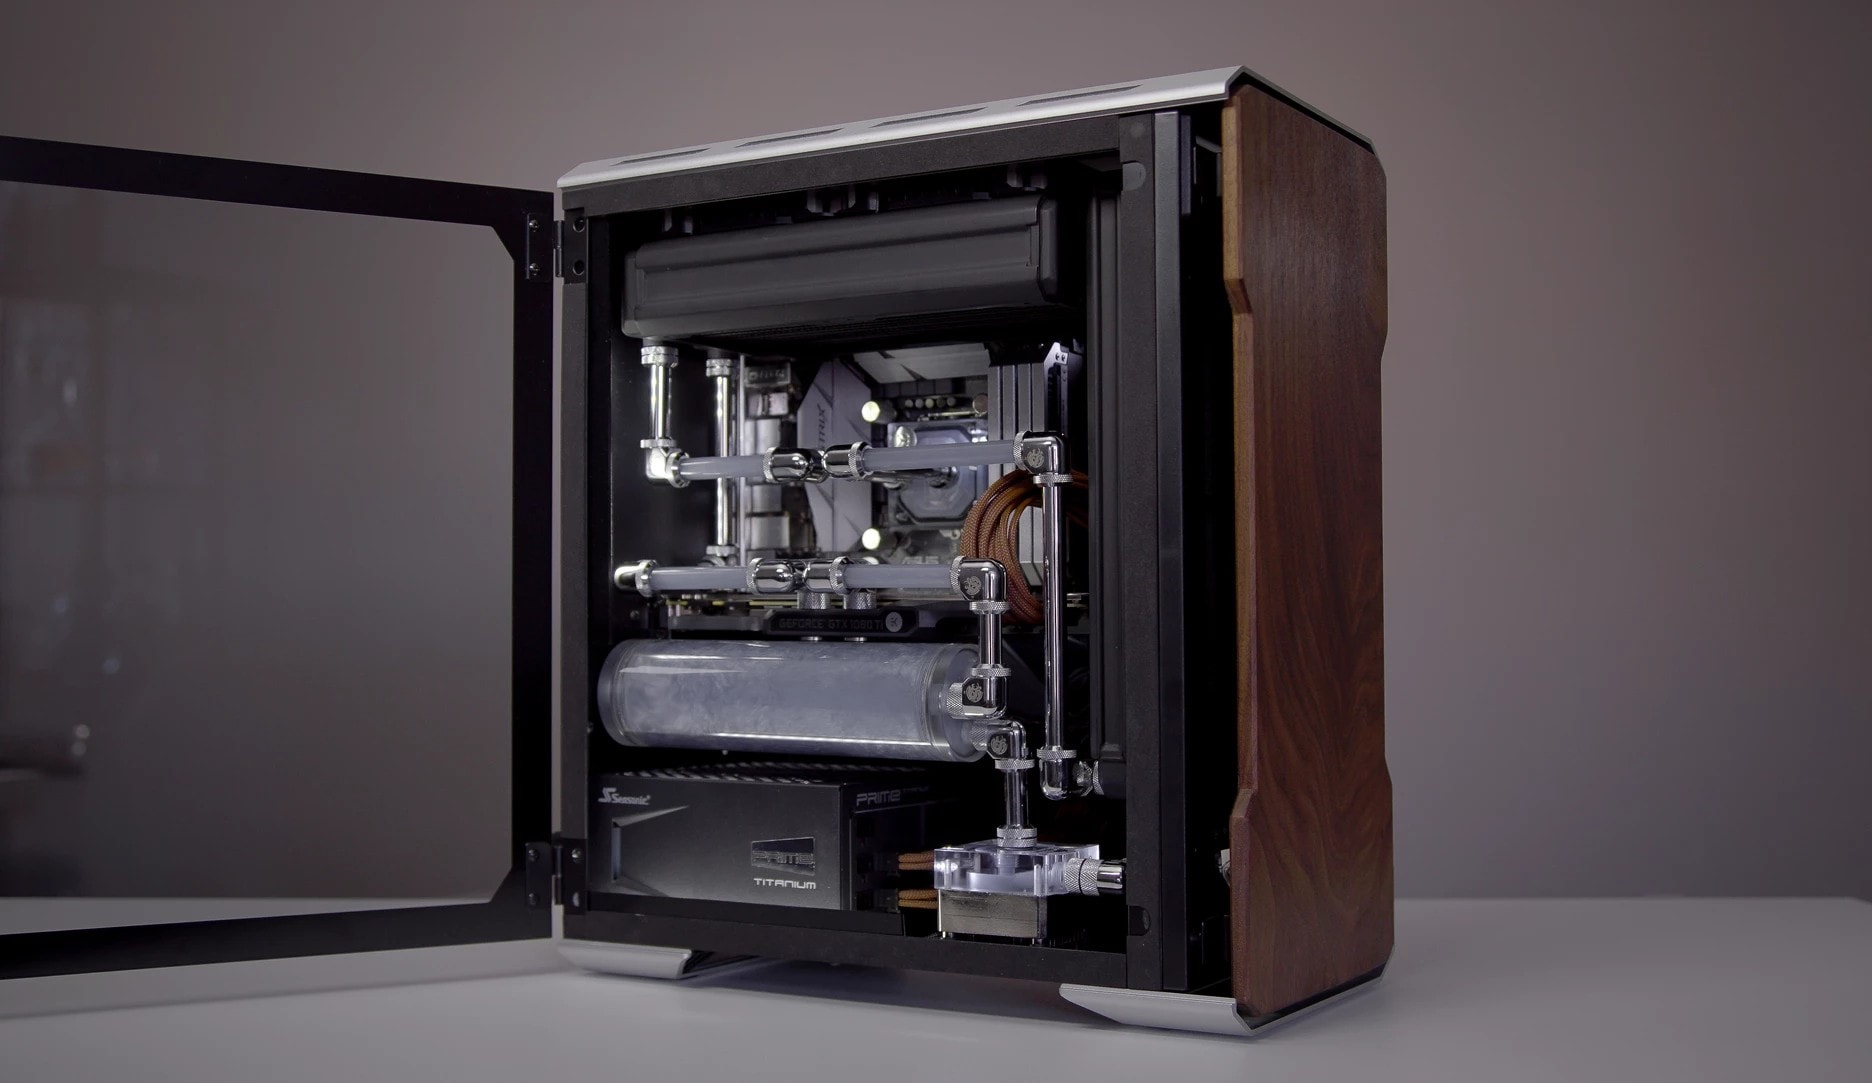 Example water cooling build in the Phanteks Enthoo Evolv mATX